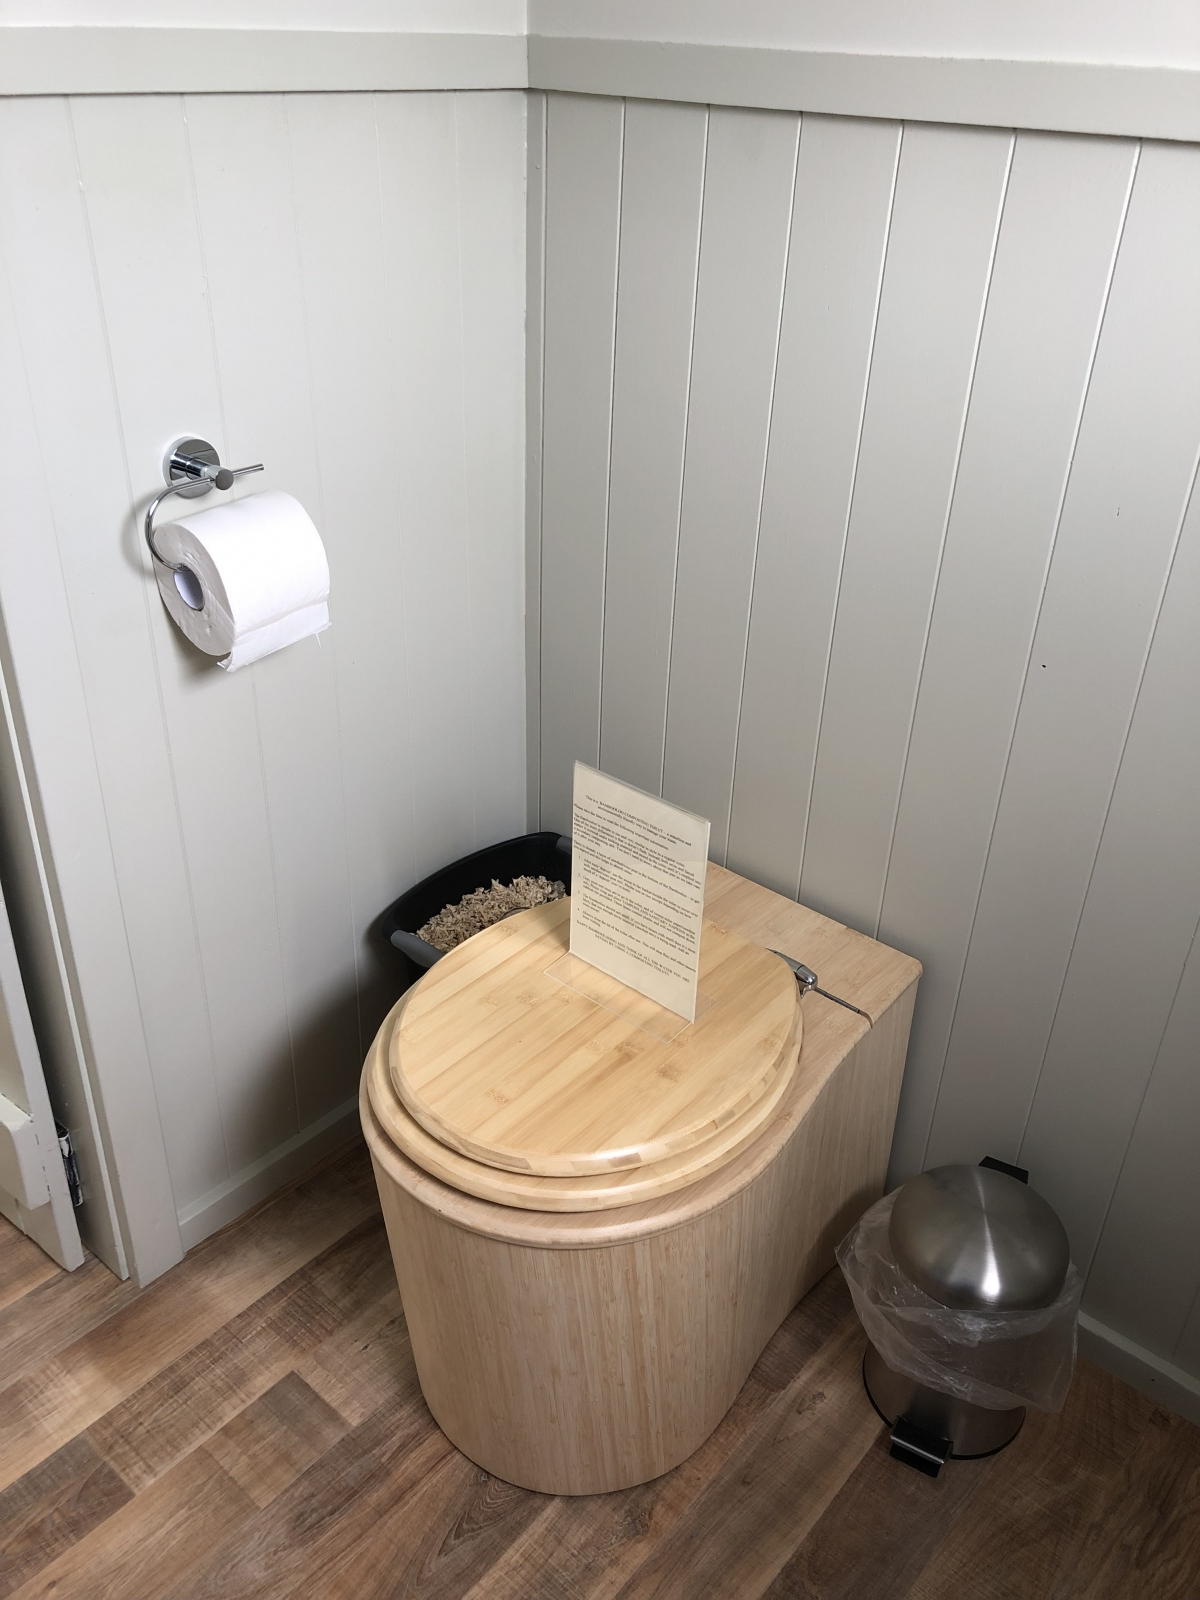 Photo of property: Bambooloo composting toilet in the ensuite bathroom